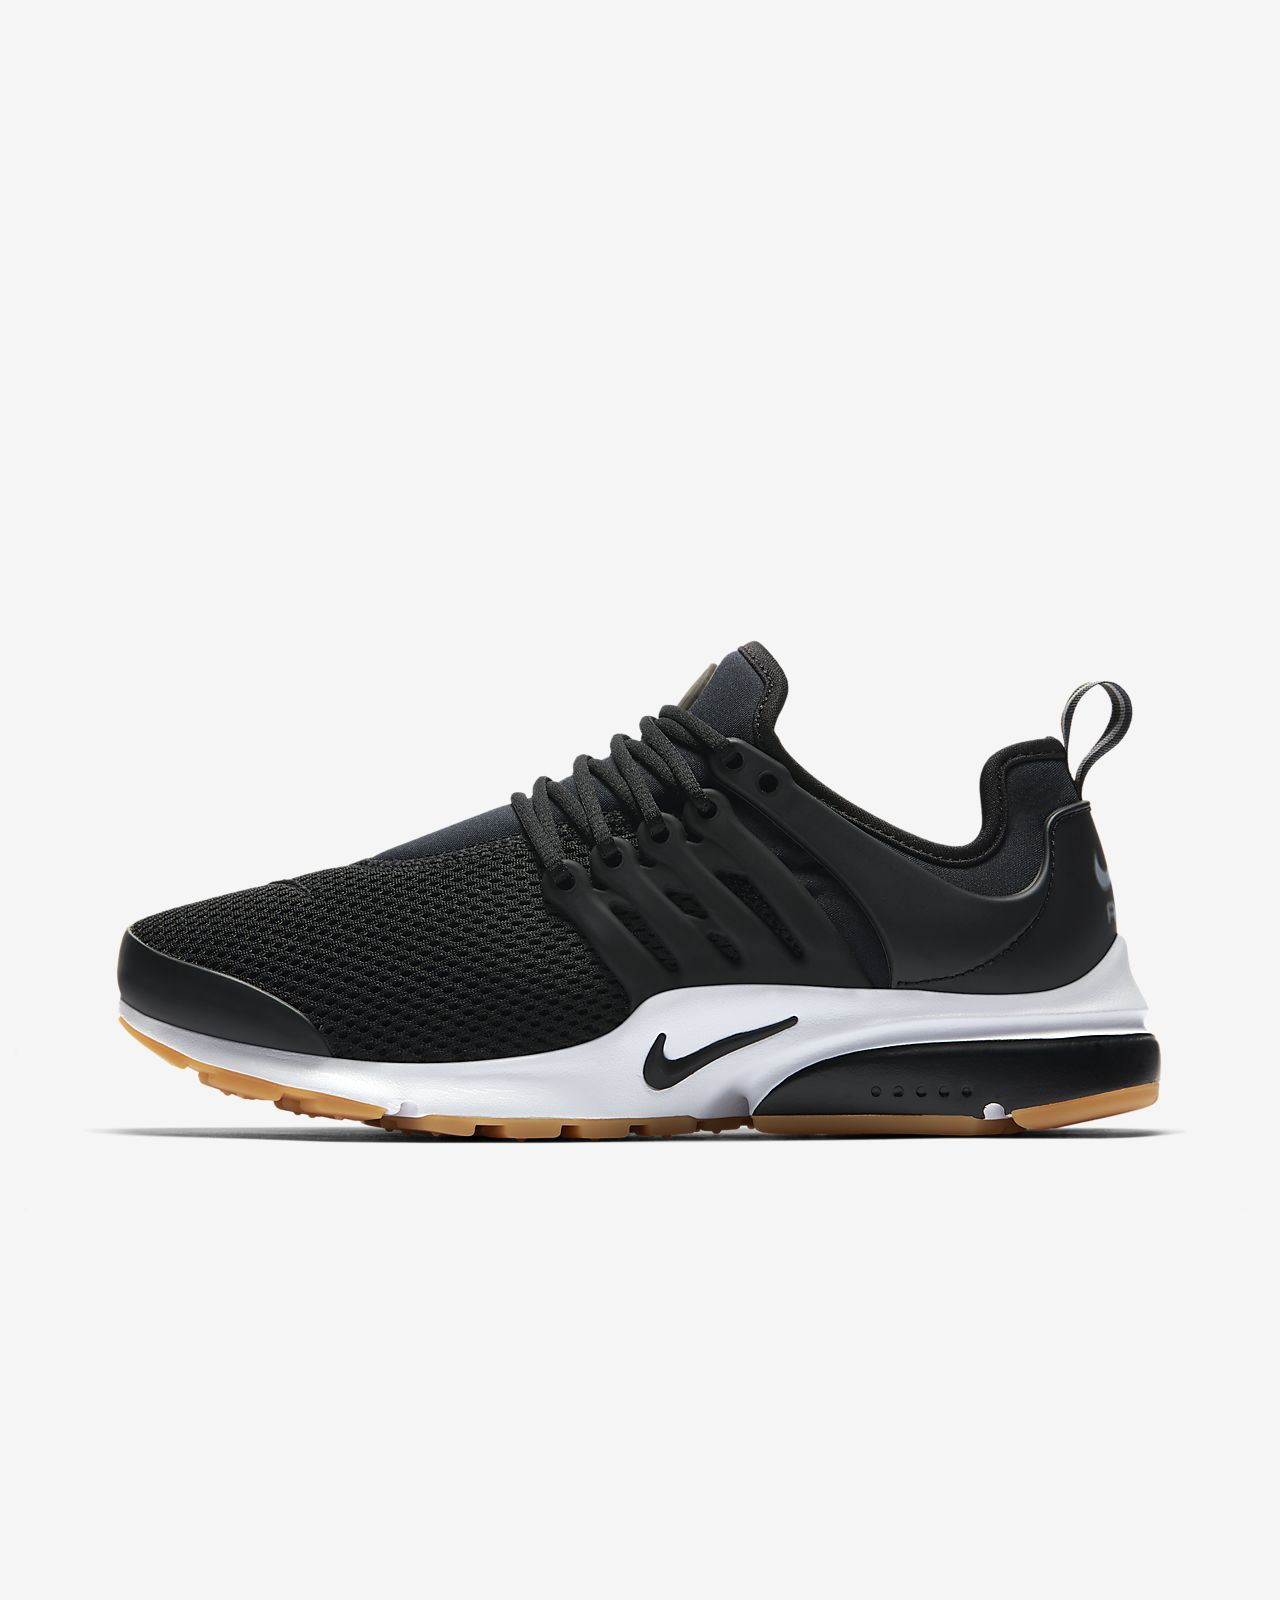 4c97905852b1 Nike Air Presto Women s Shoe. Nike.com